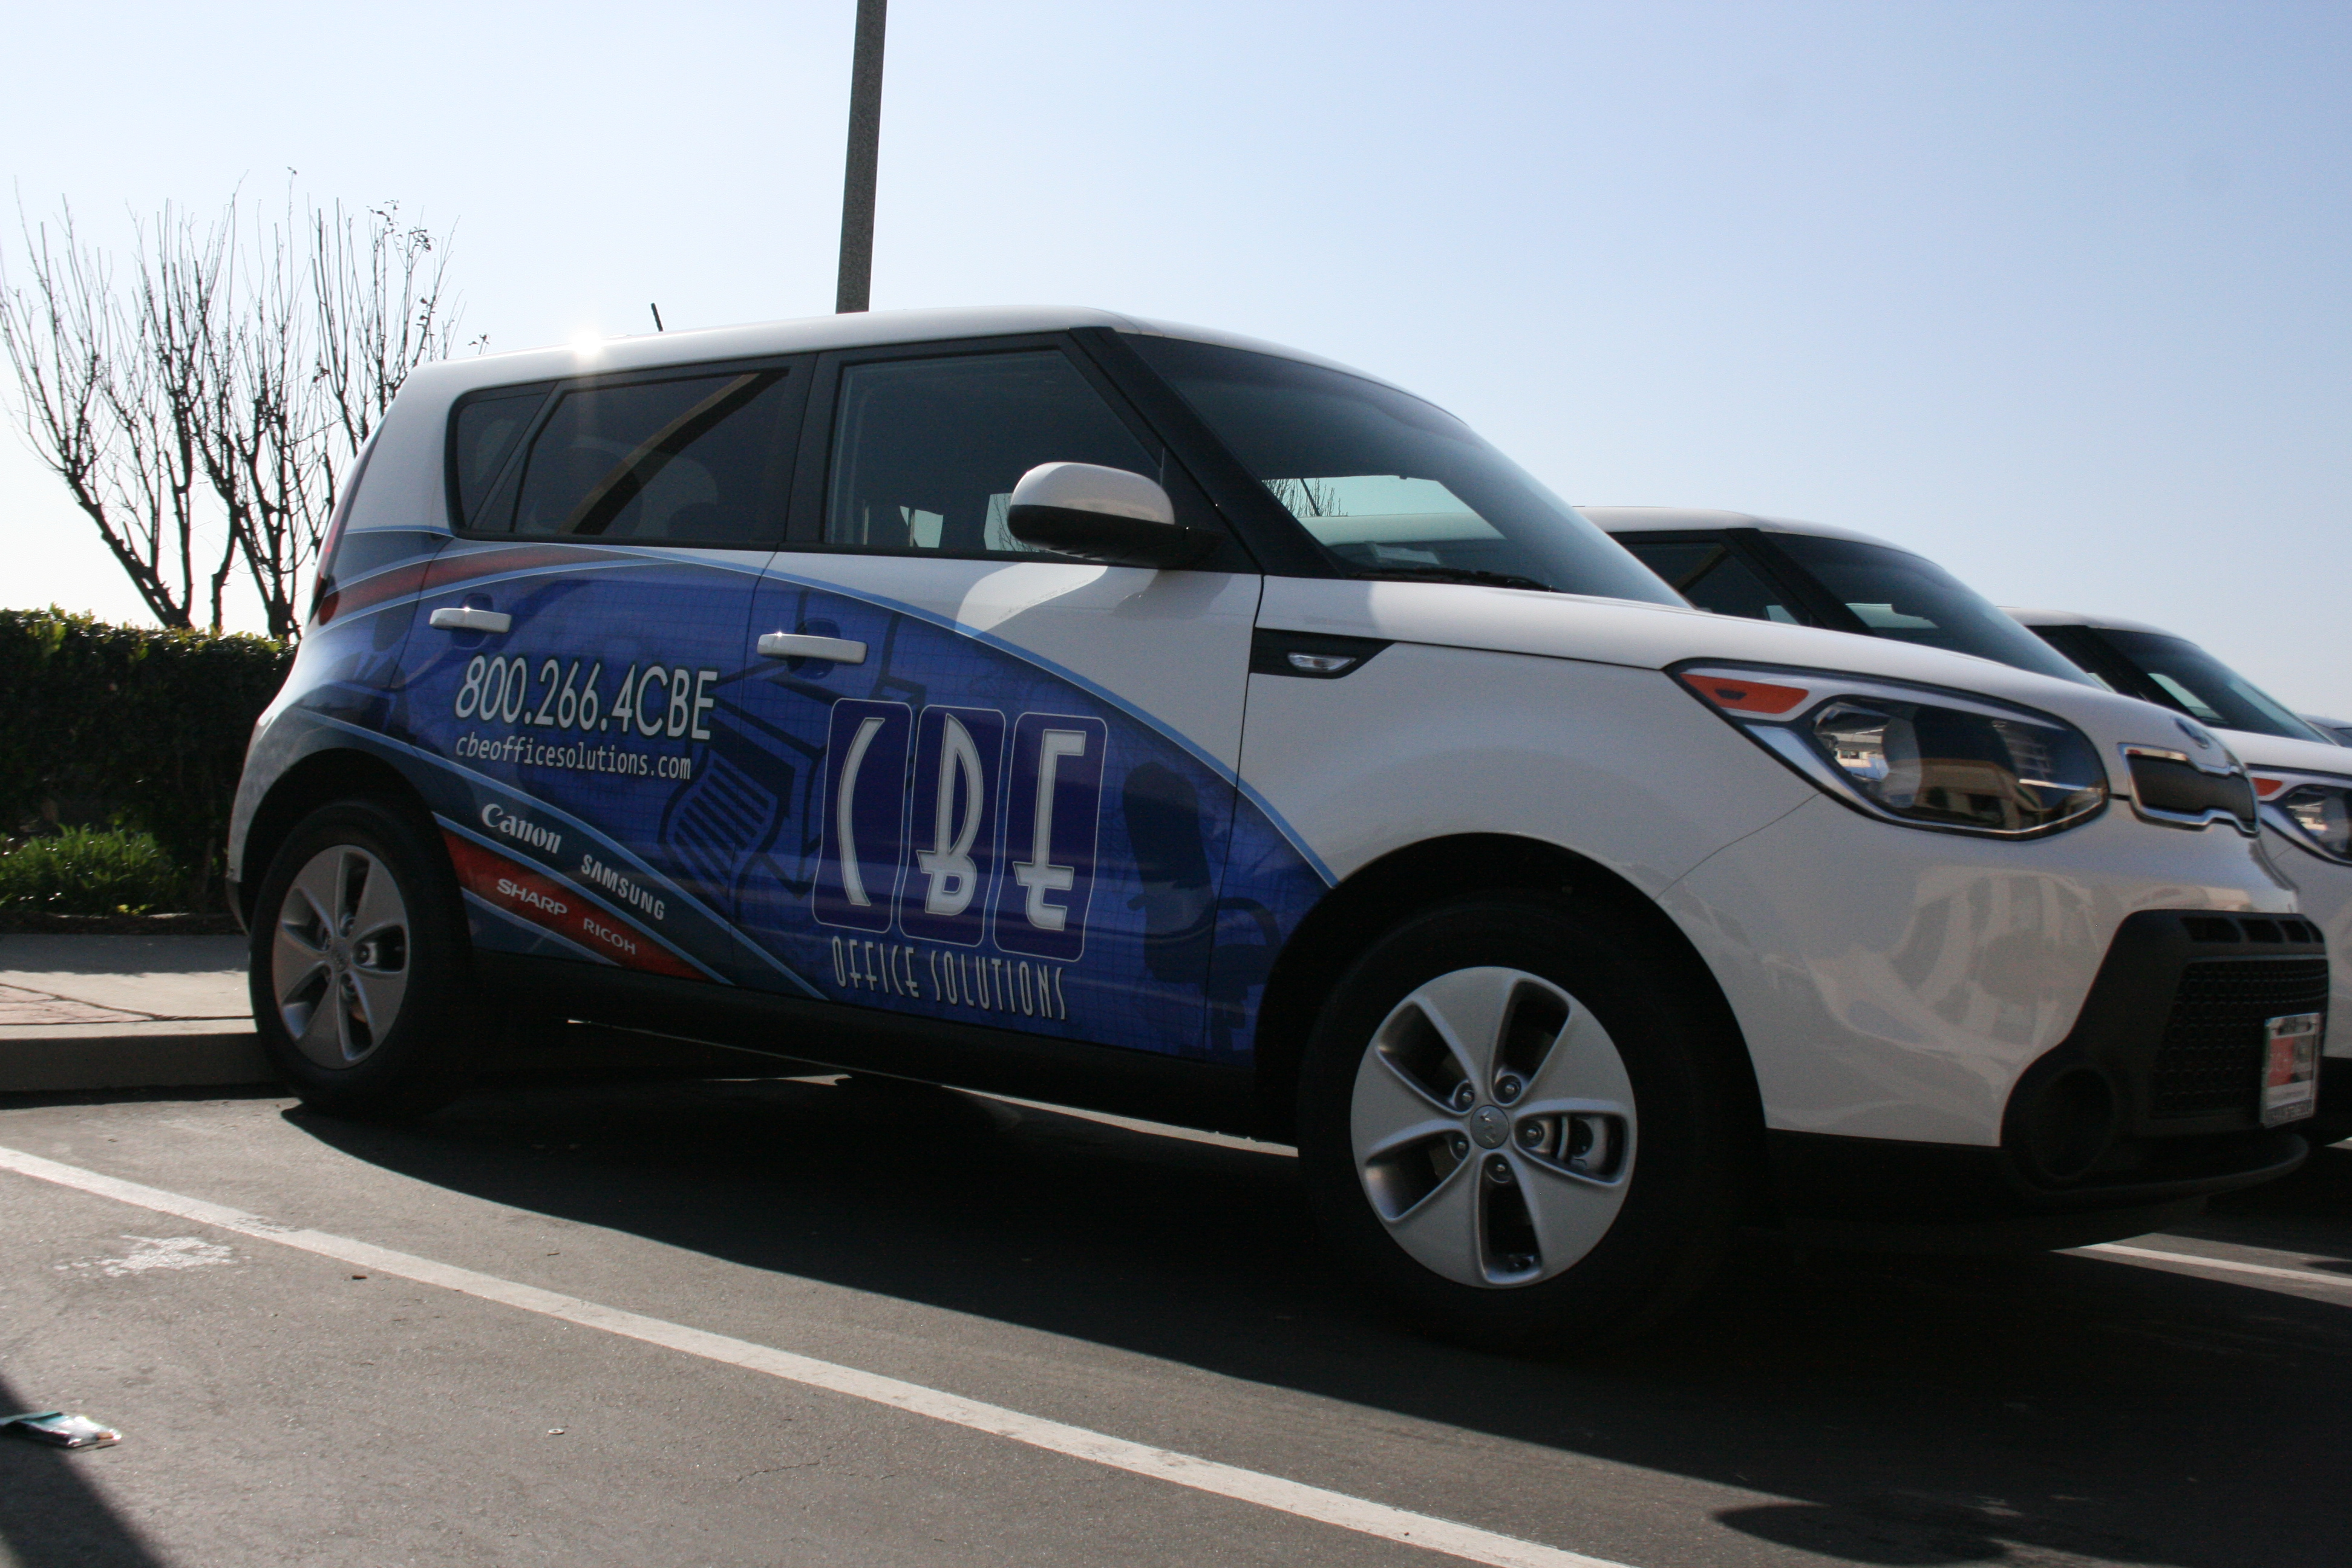 CBE Office Solutions fleet wraps